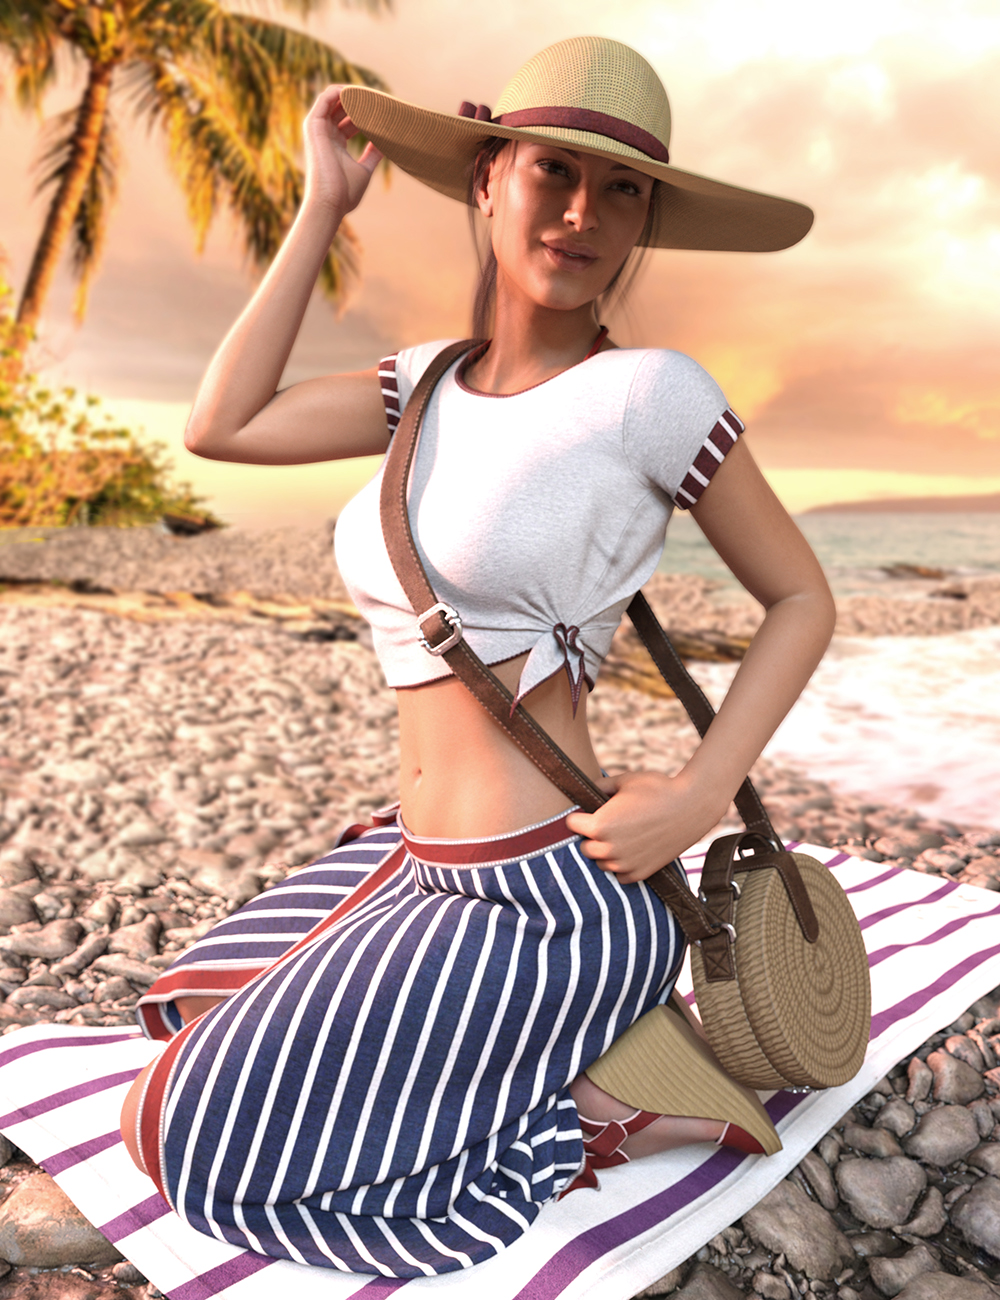 It's Always Summer Poses and Props for Genesis 8 Females by: Luthbellina, 3D Models by Daz 3D